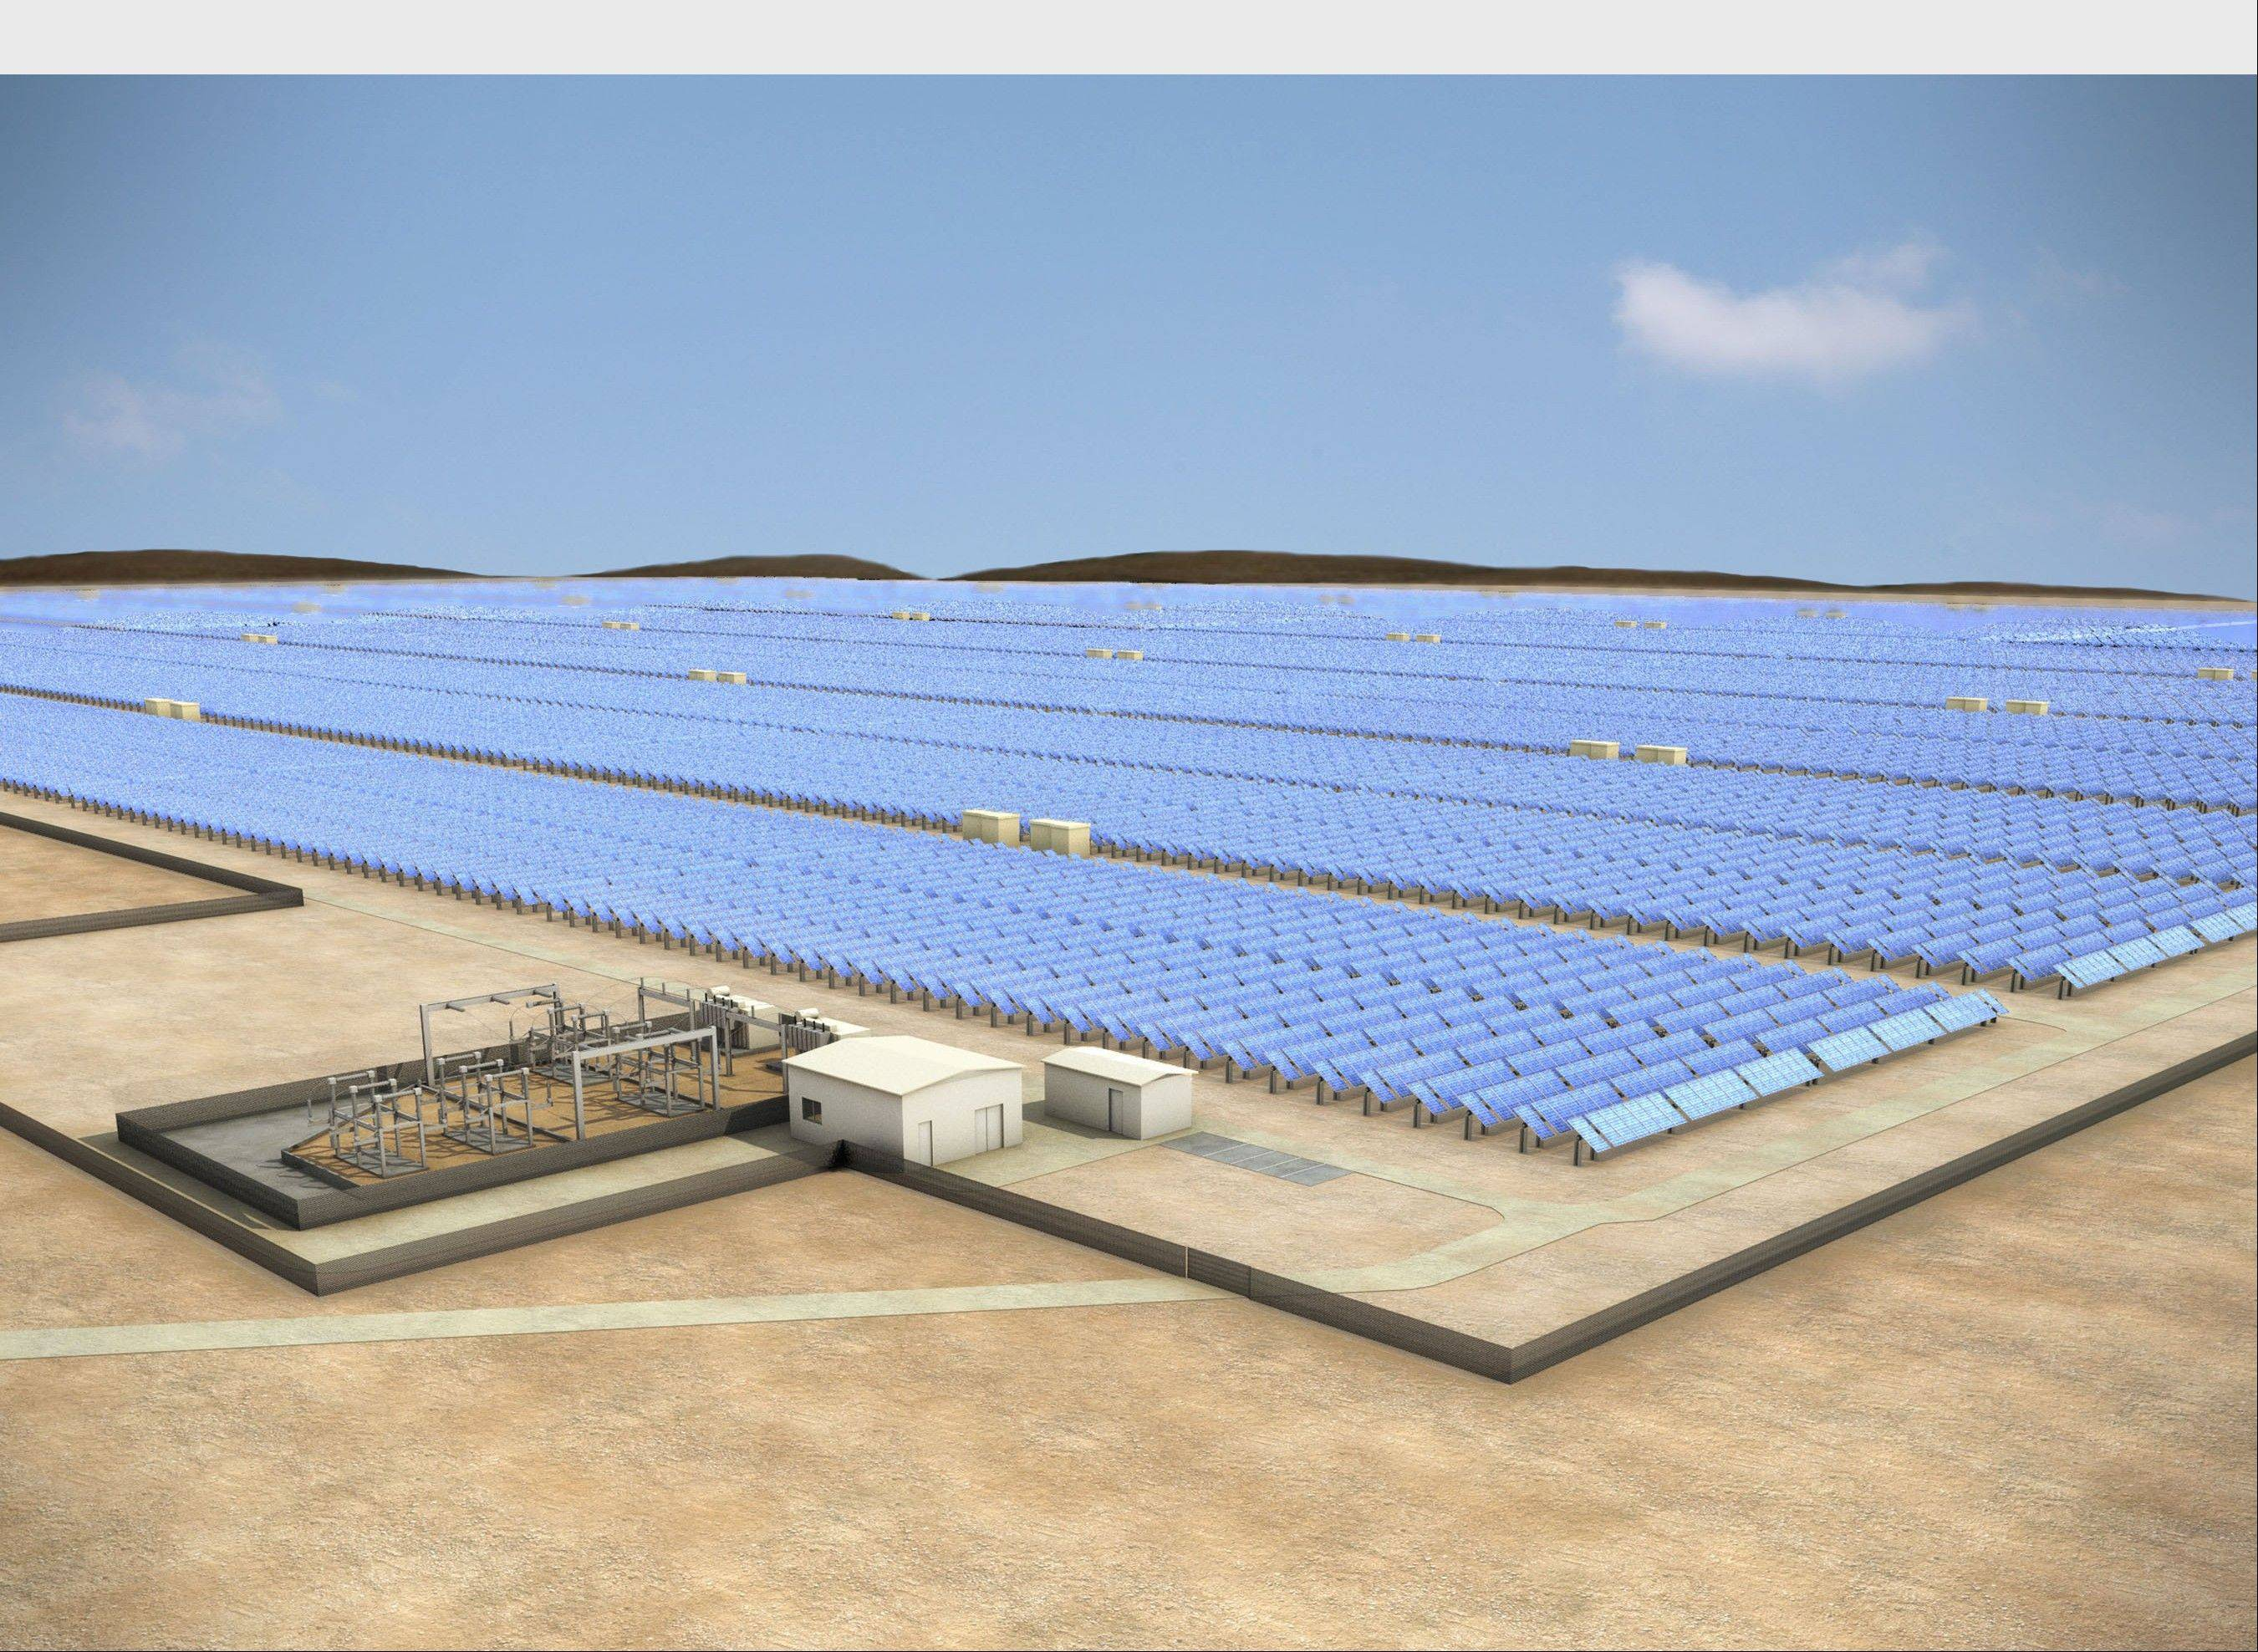 A 100 megawatt solar facility to be built in Chile by SunEdison for CAP Mining.